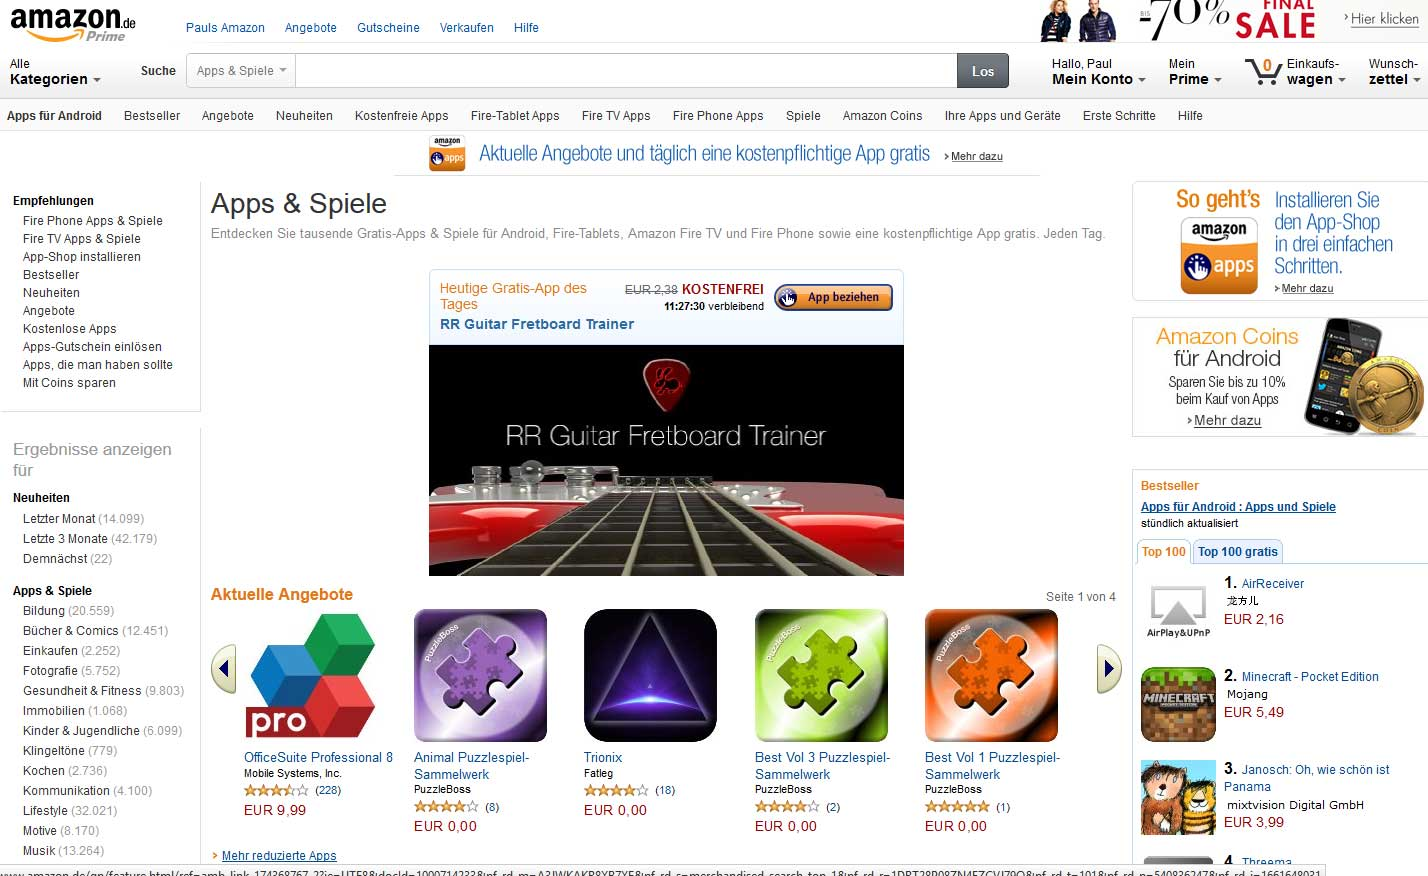 Amazon App Shop Android Apps auch auf dem Blackberry installieren - Bildquelle: amazon.de